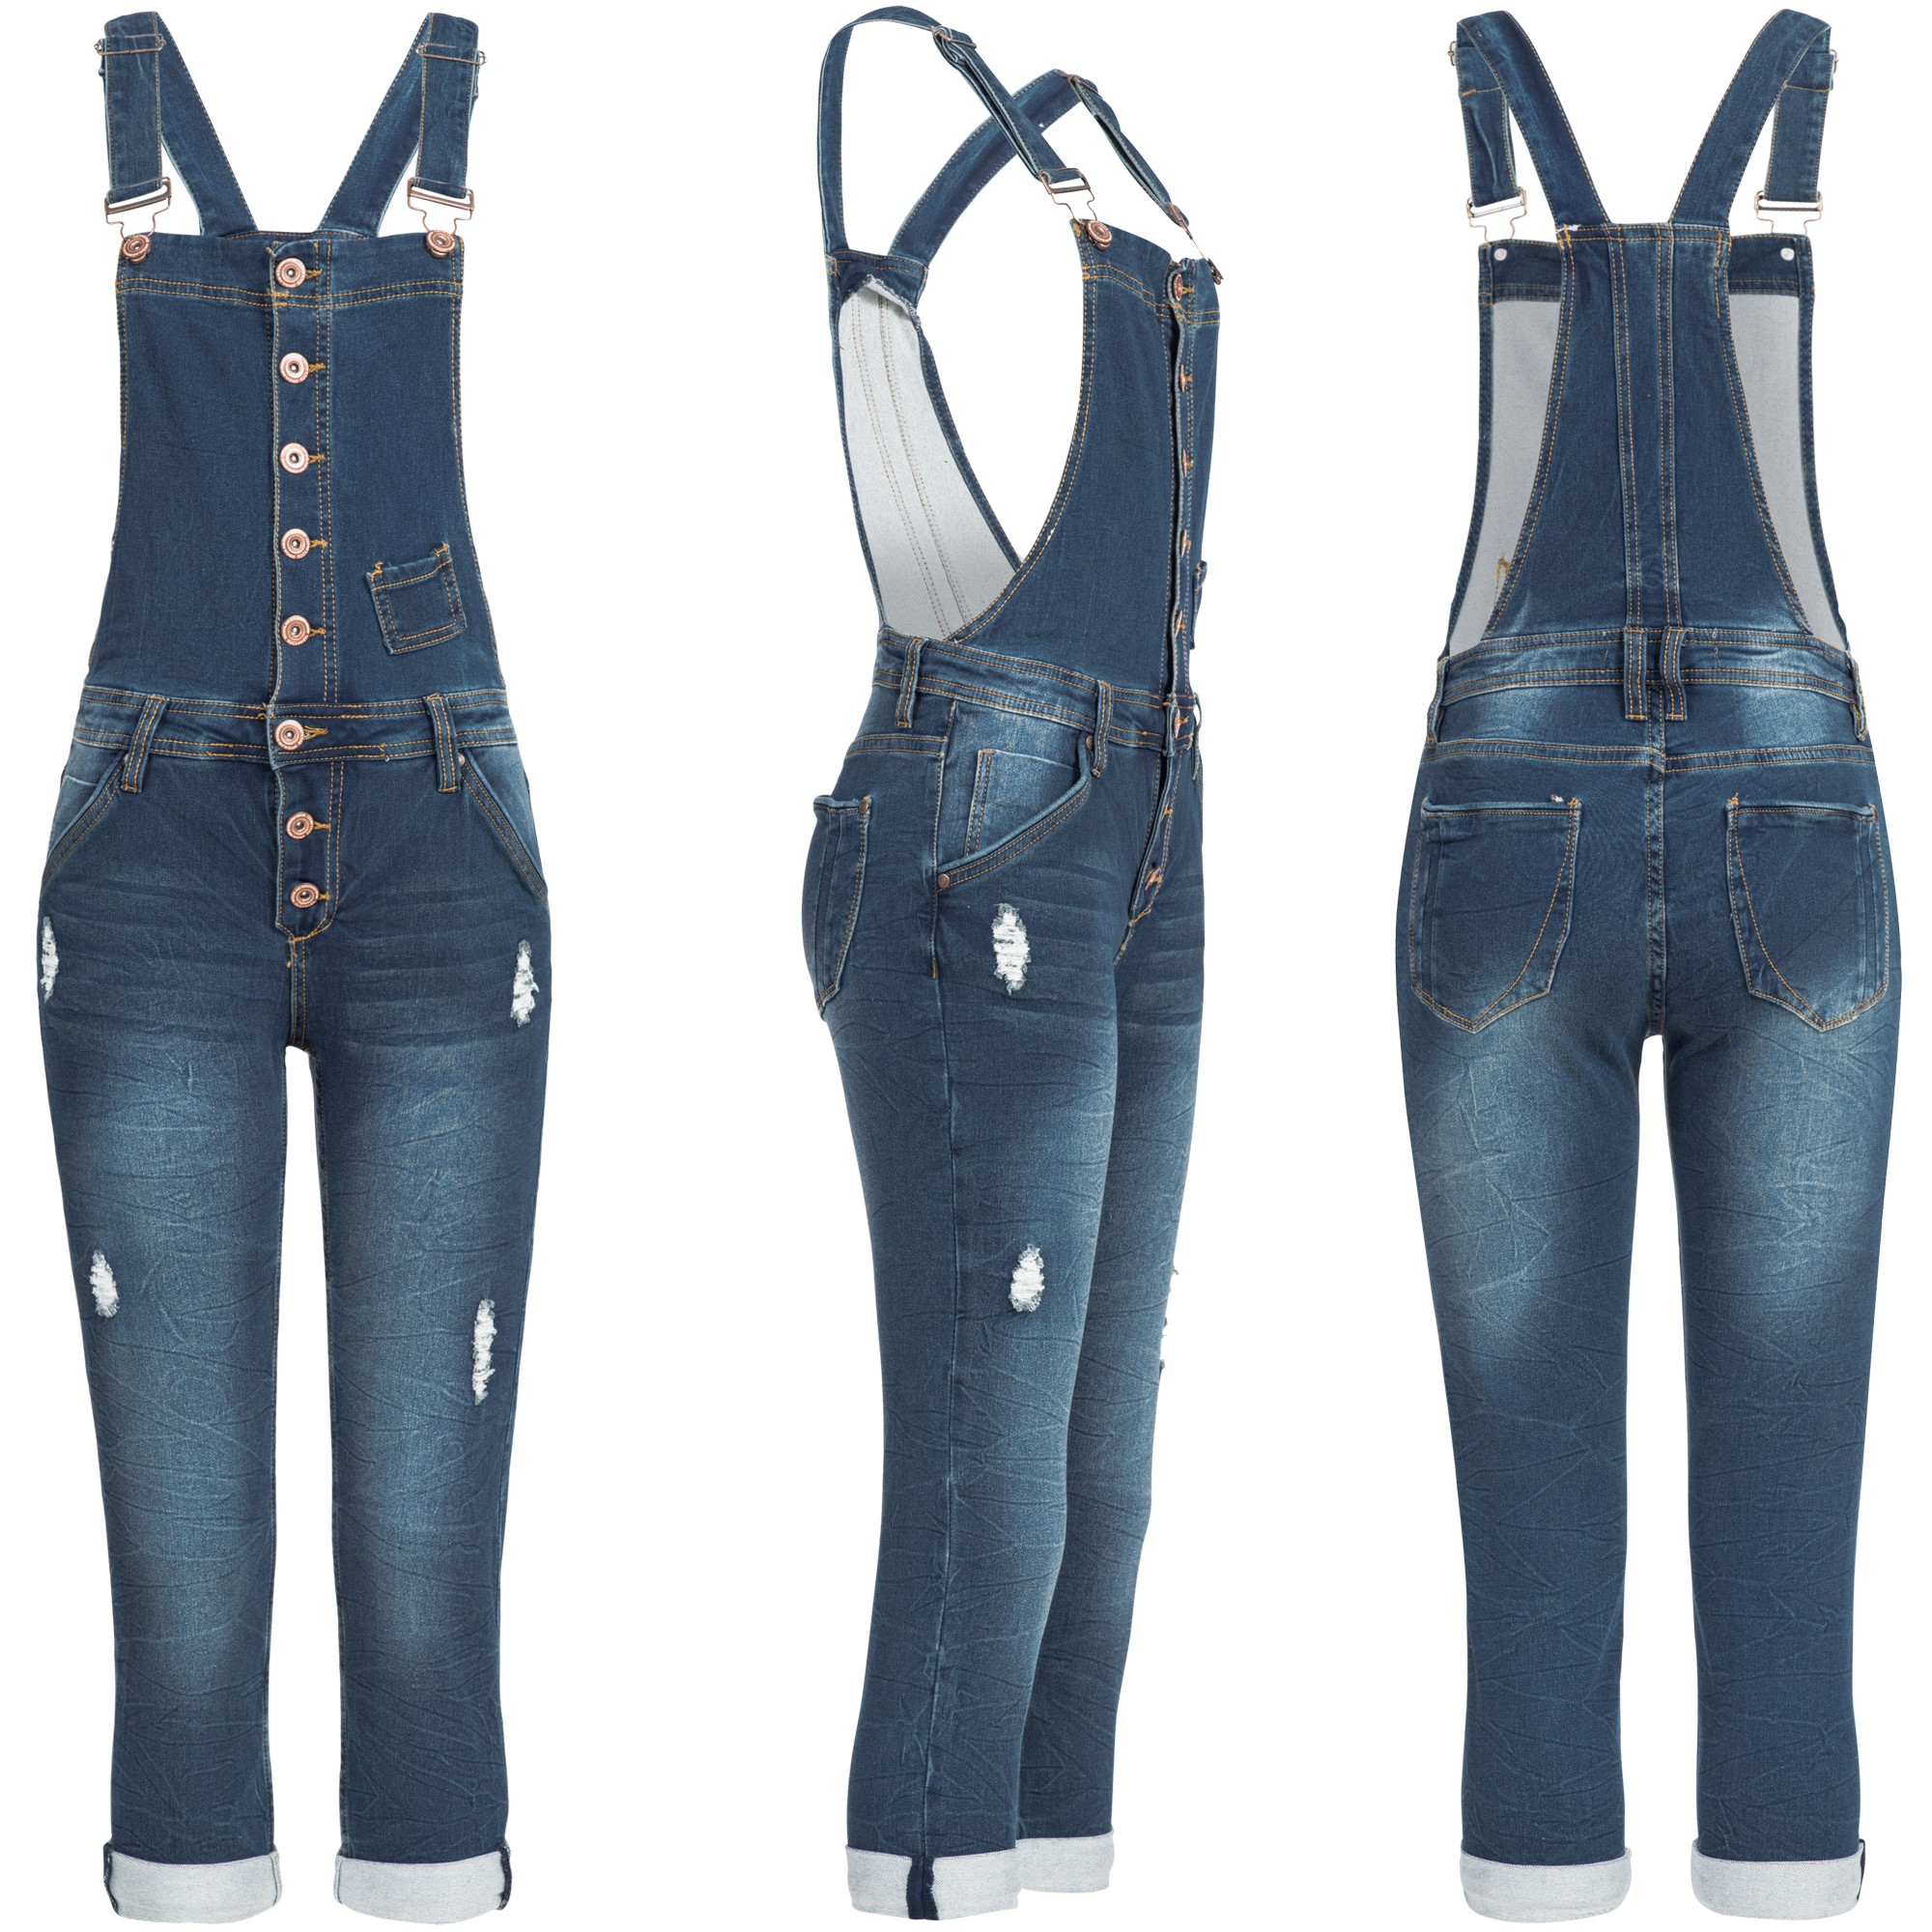 rock angel damen jeans hose skinny latzhose overall. Black Bedroom Furniture Sets. Home Design Ideas